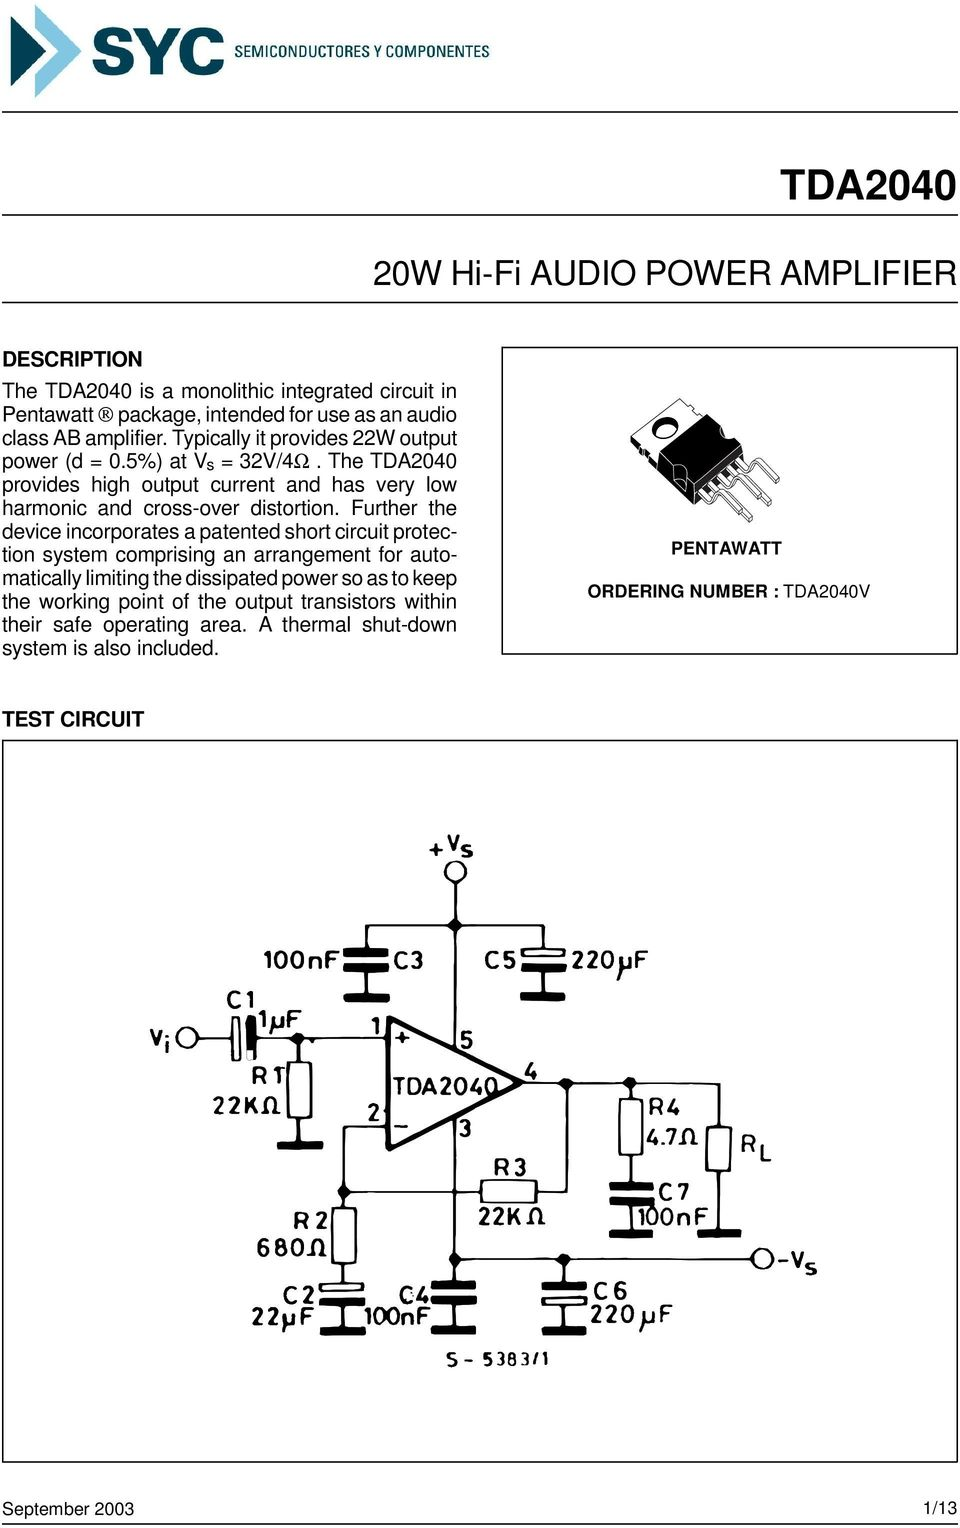 Tda W Hi Fi Audio Power Amplifier Pdf 35w Circuit Further The Device Incorporates A Patented Short Protection System Comprising An Arrangement For Automatically Limiting